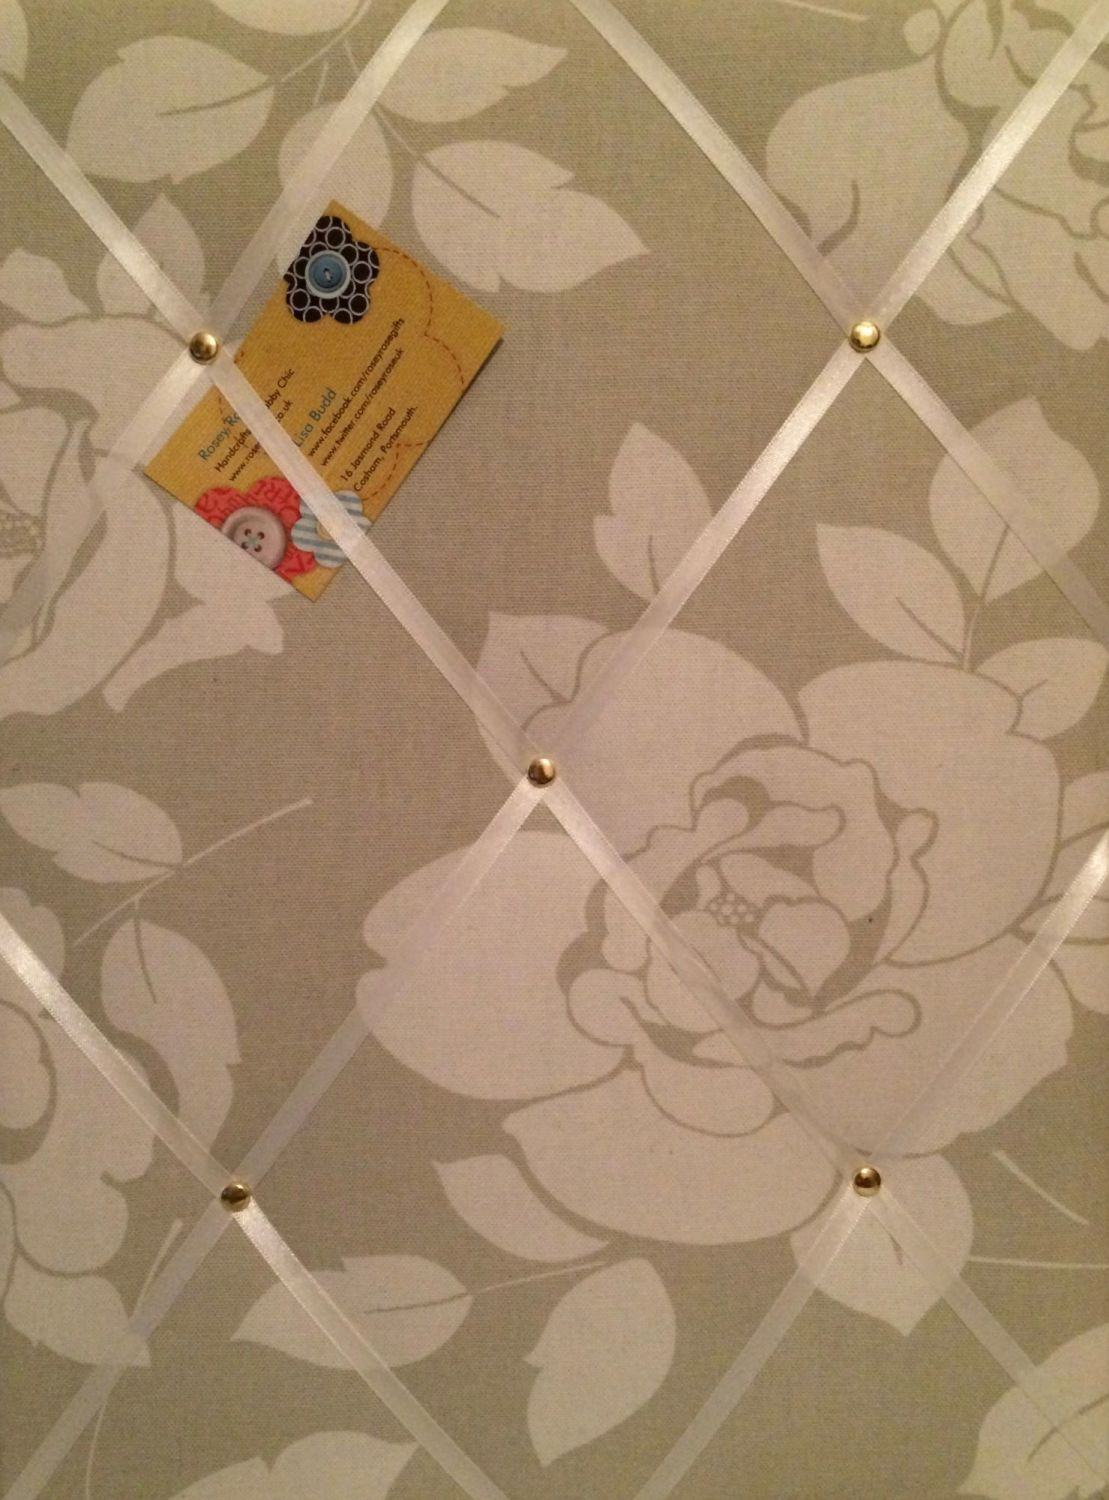 Medium 40x30cm Clarke & Clarke Meadow Taupe Floral Hand Crafted Fabric Noti